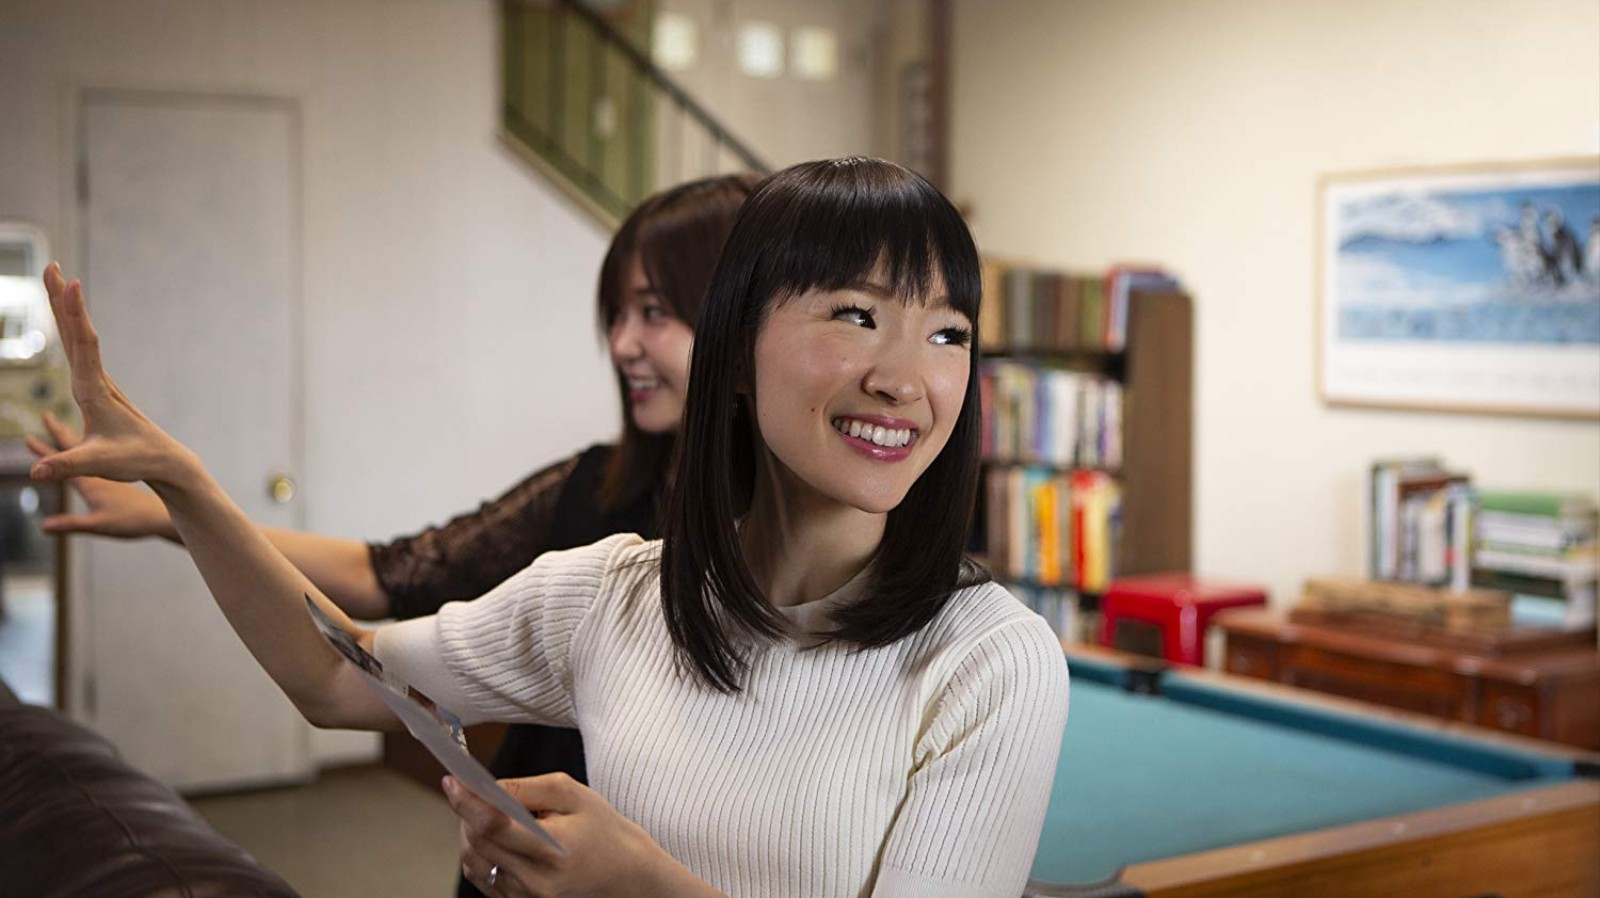 'Tidying Up with Marie Kondo' Is Inadvertently About Women's Invisible Labor